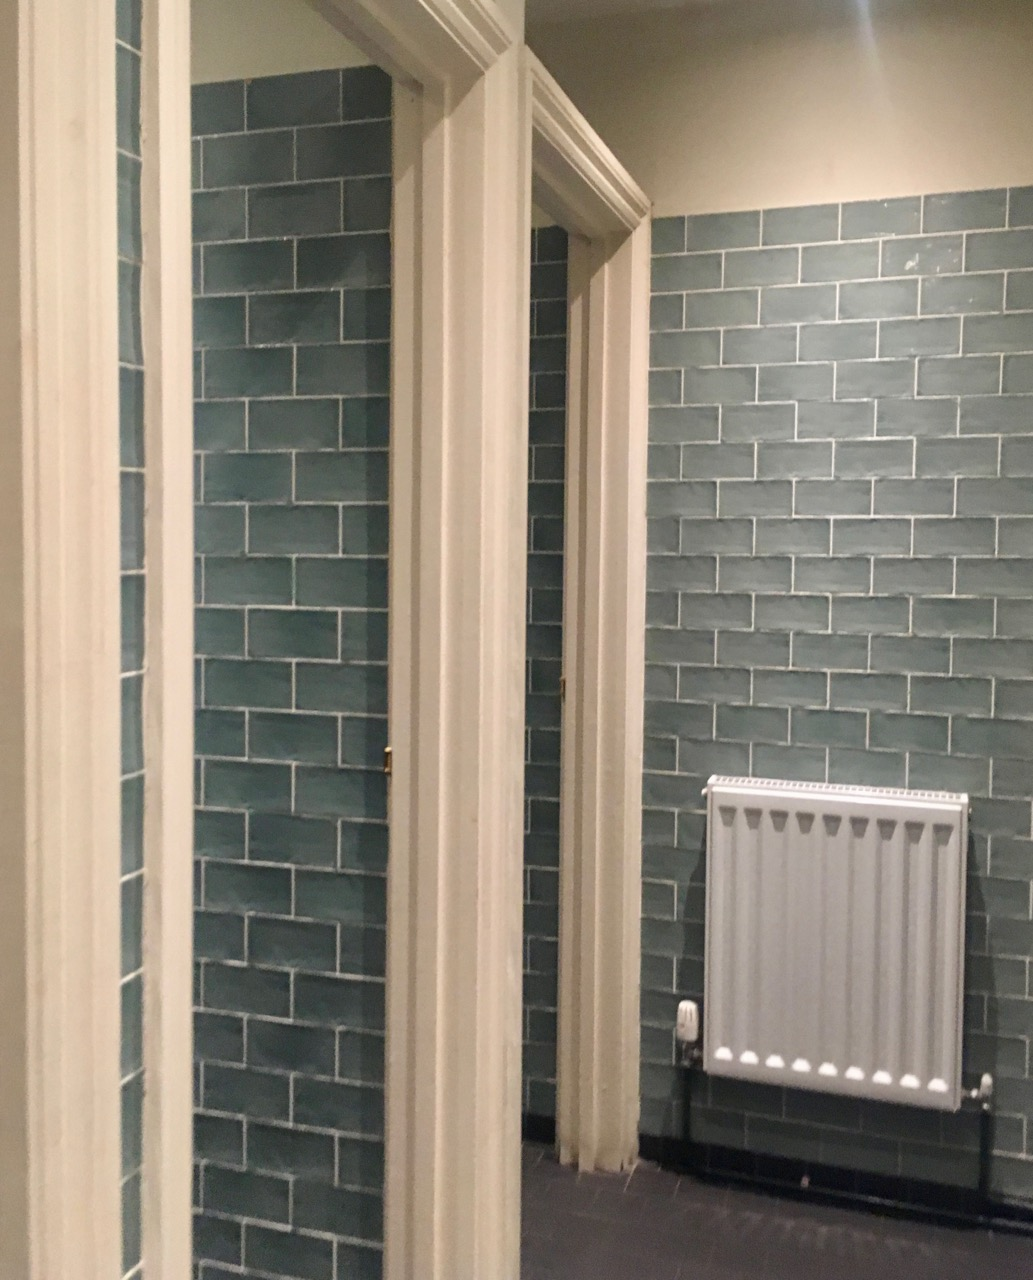 pale green tiles in the loos at the Curious Pig